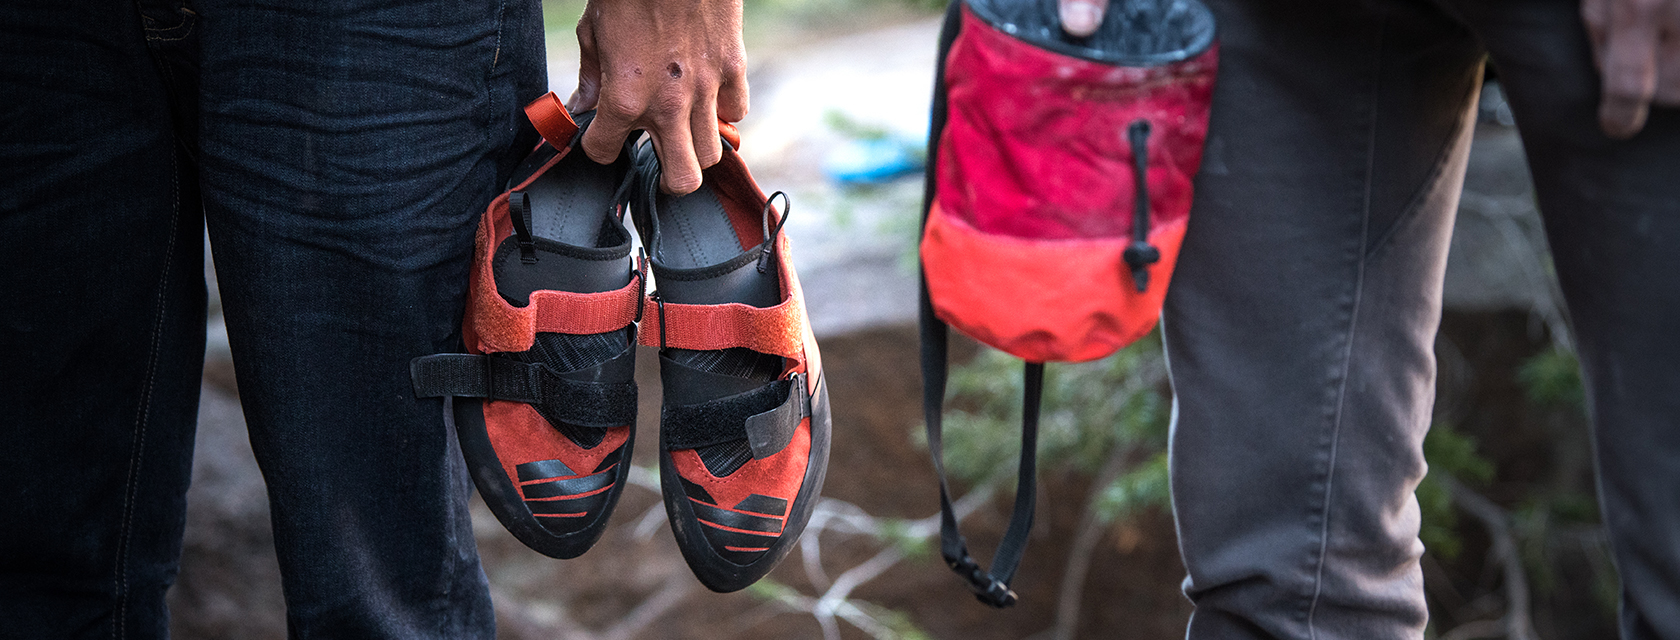 Gear Review: Black Diamond Zone Climbing Shoe